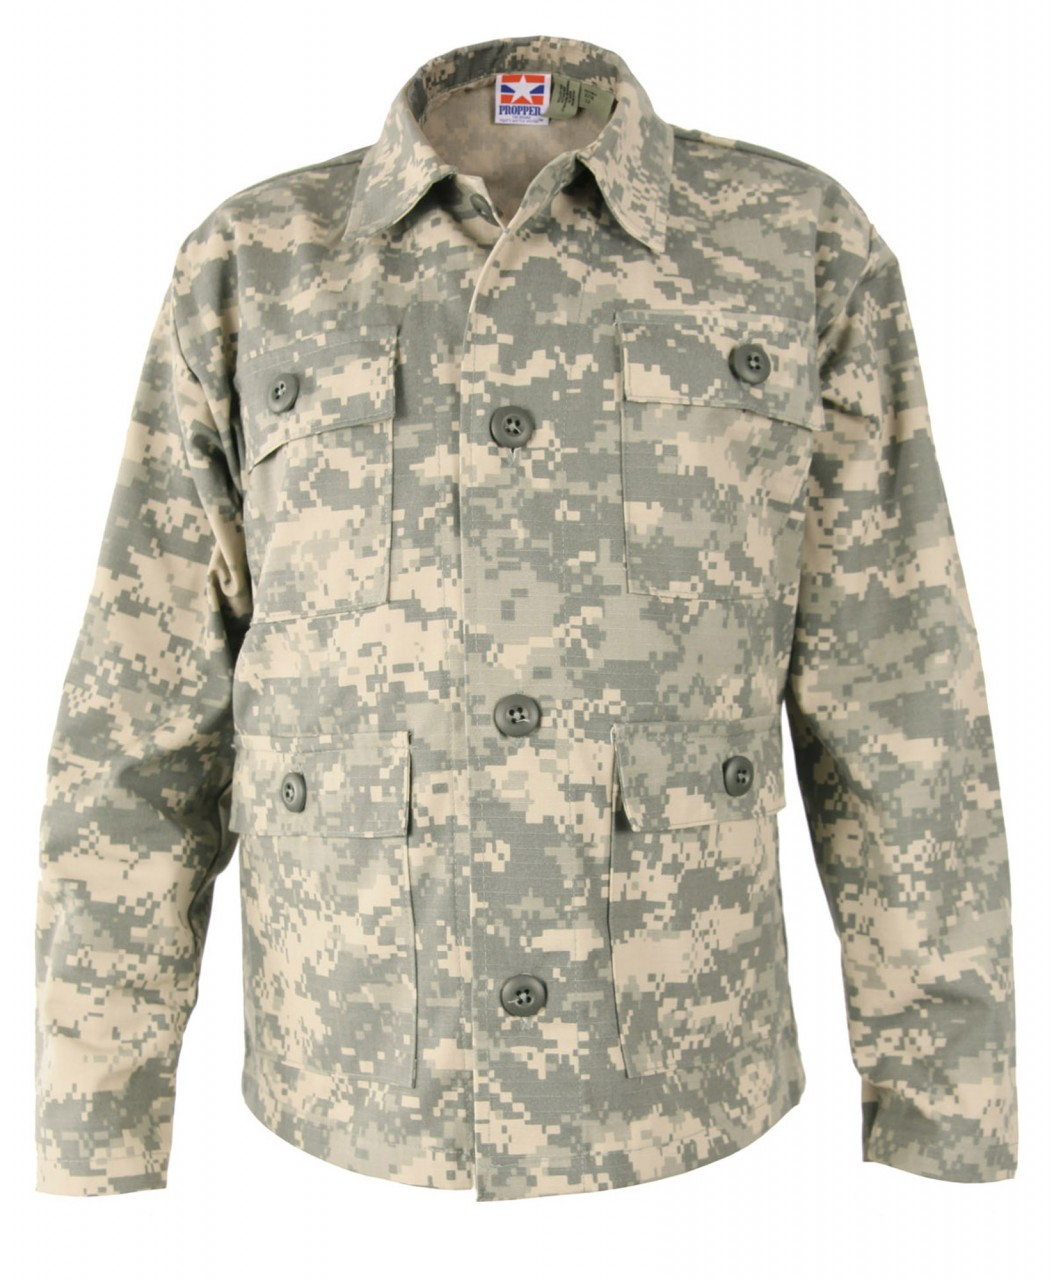 Childrenu0027s Army Halloween Costumes  sc 1 st  Tactical Gear and Military Clothing News & Tactical Gear and Military Clothing News : Childrenu0027s Army Halloween ...